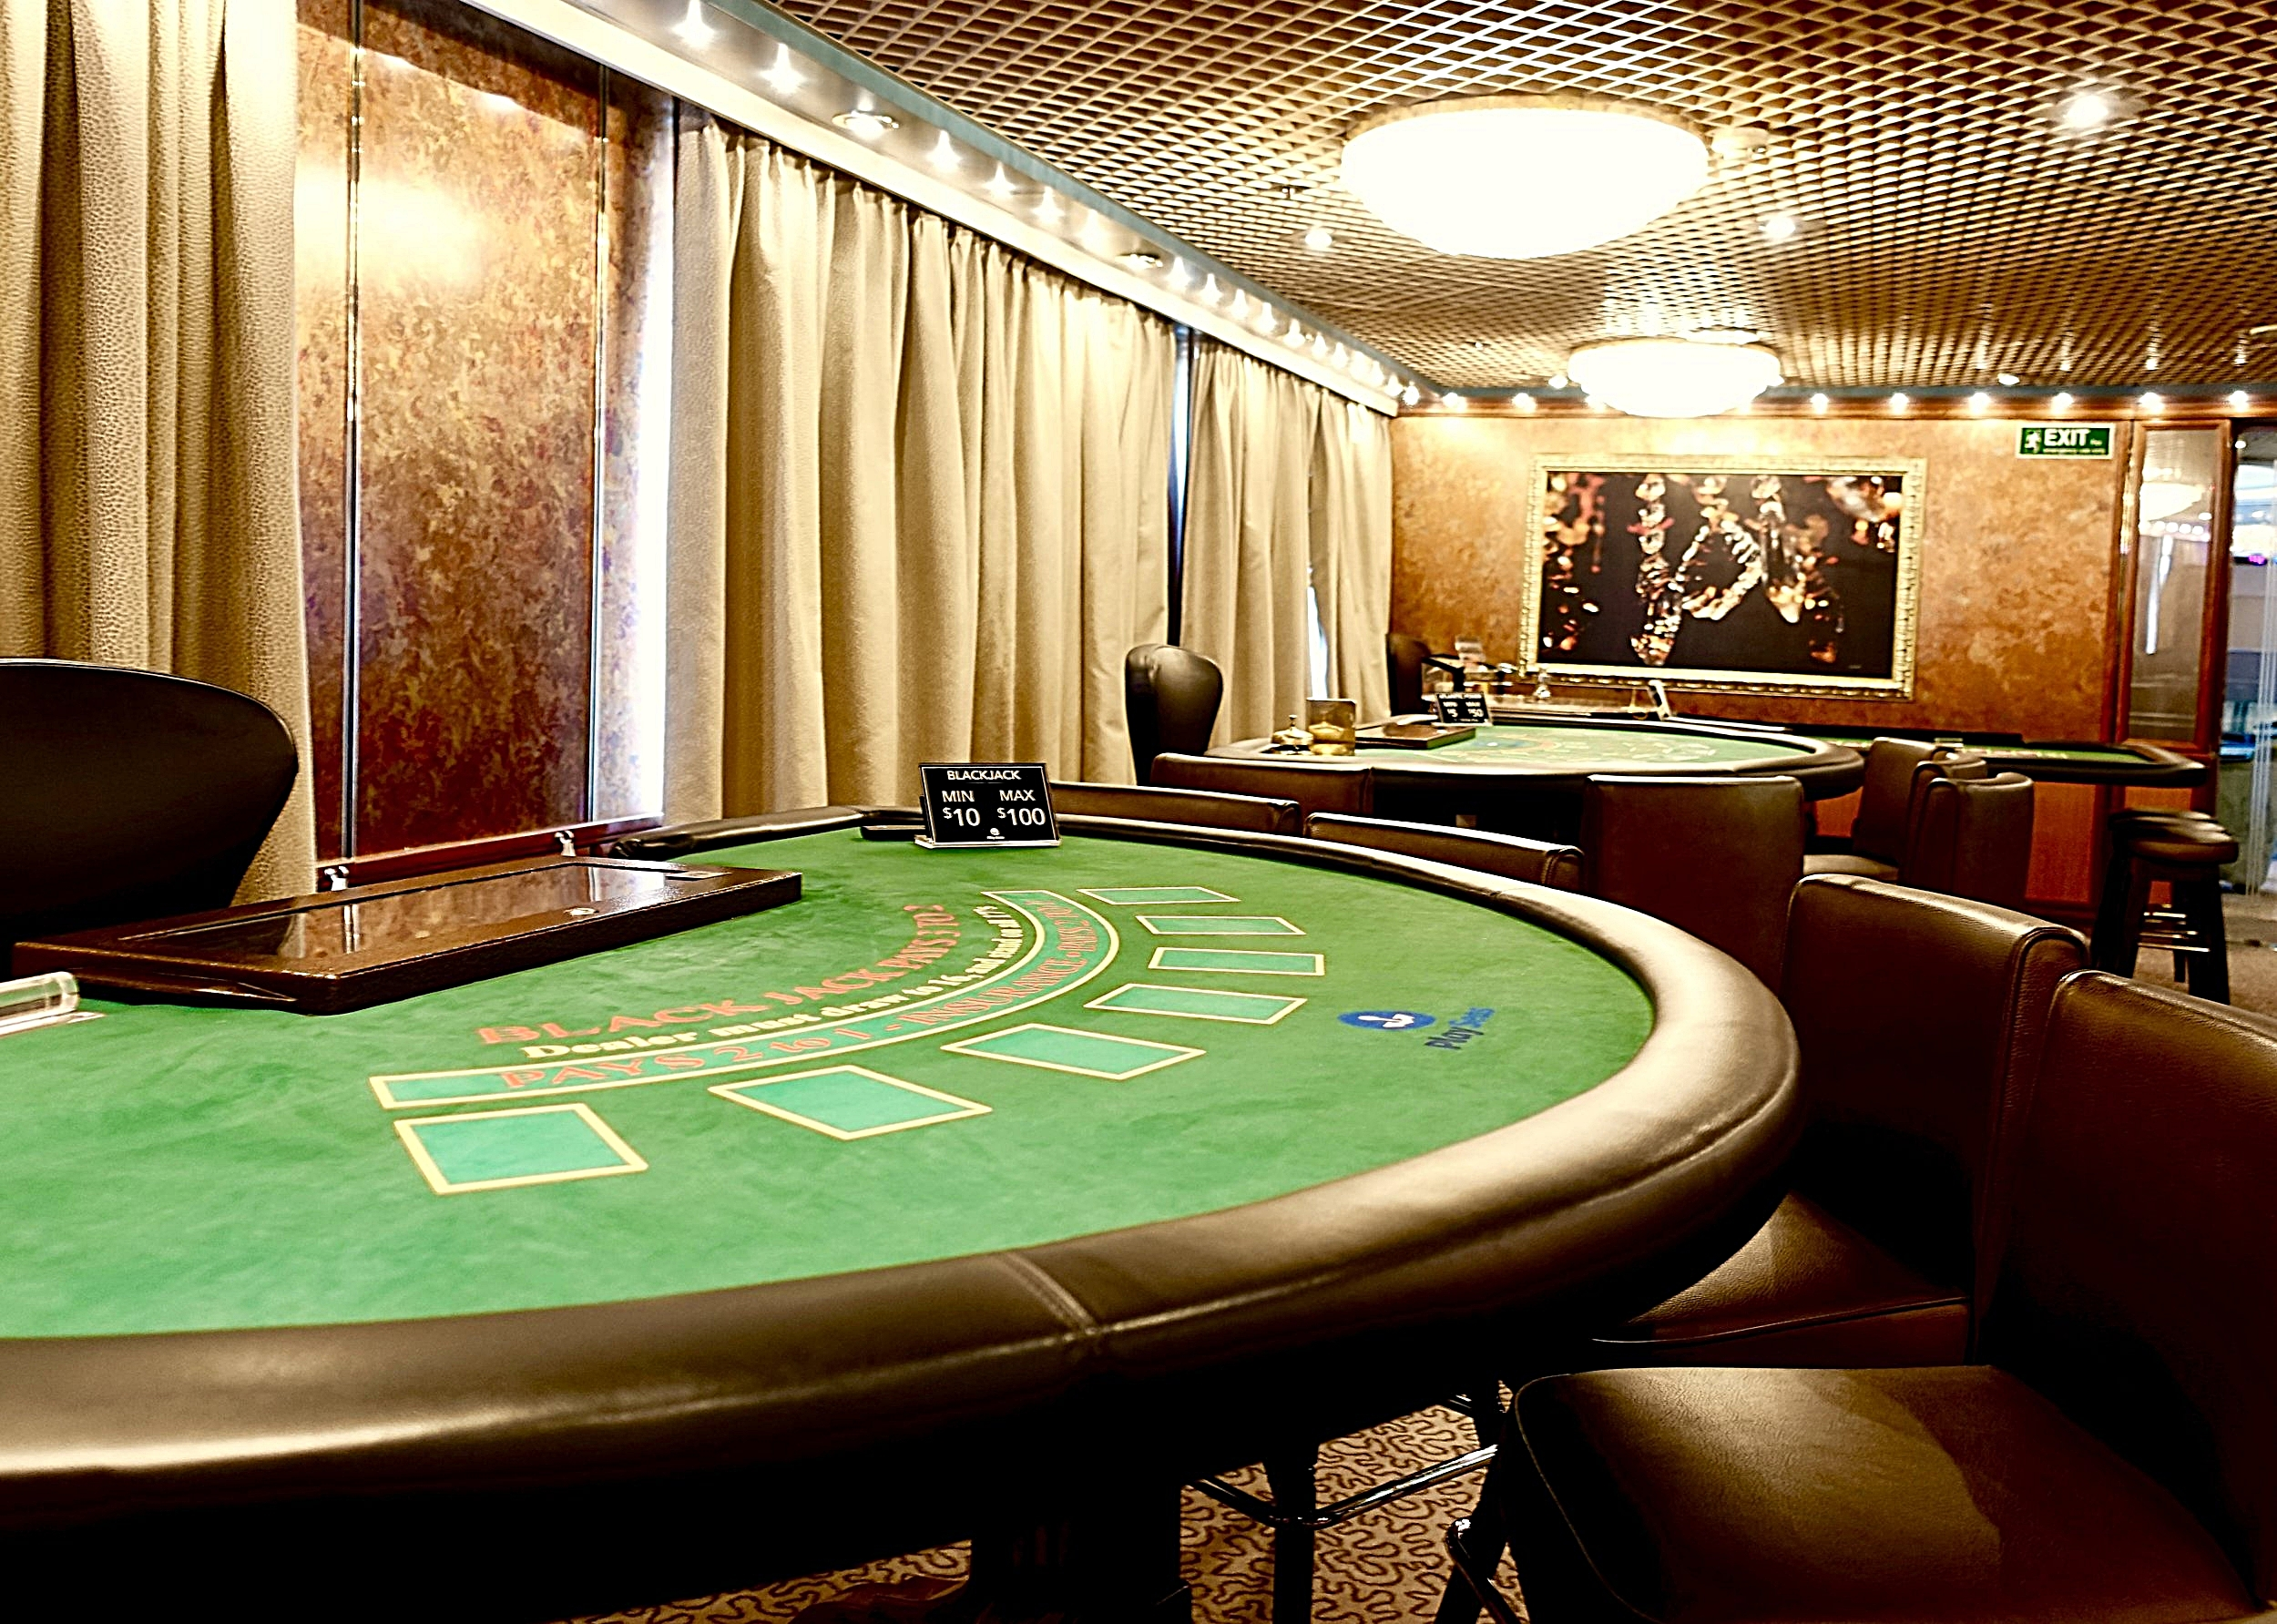 The Casino card tables.